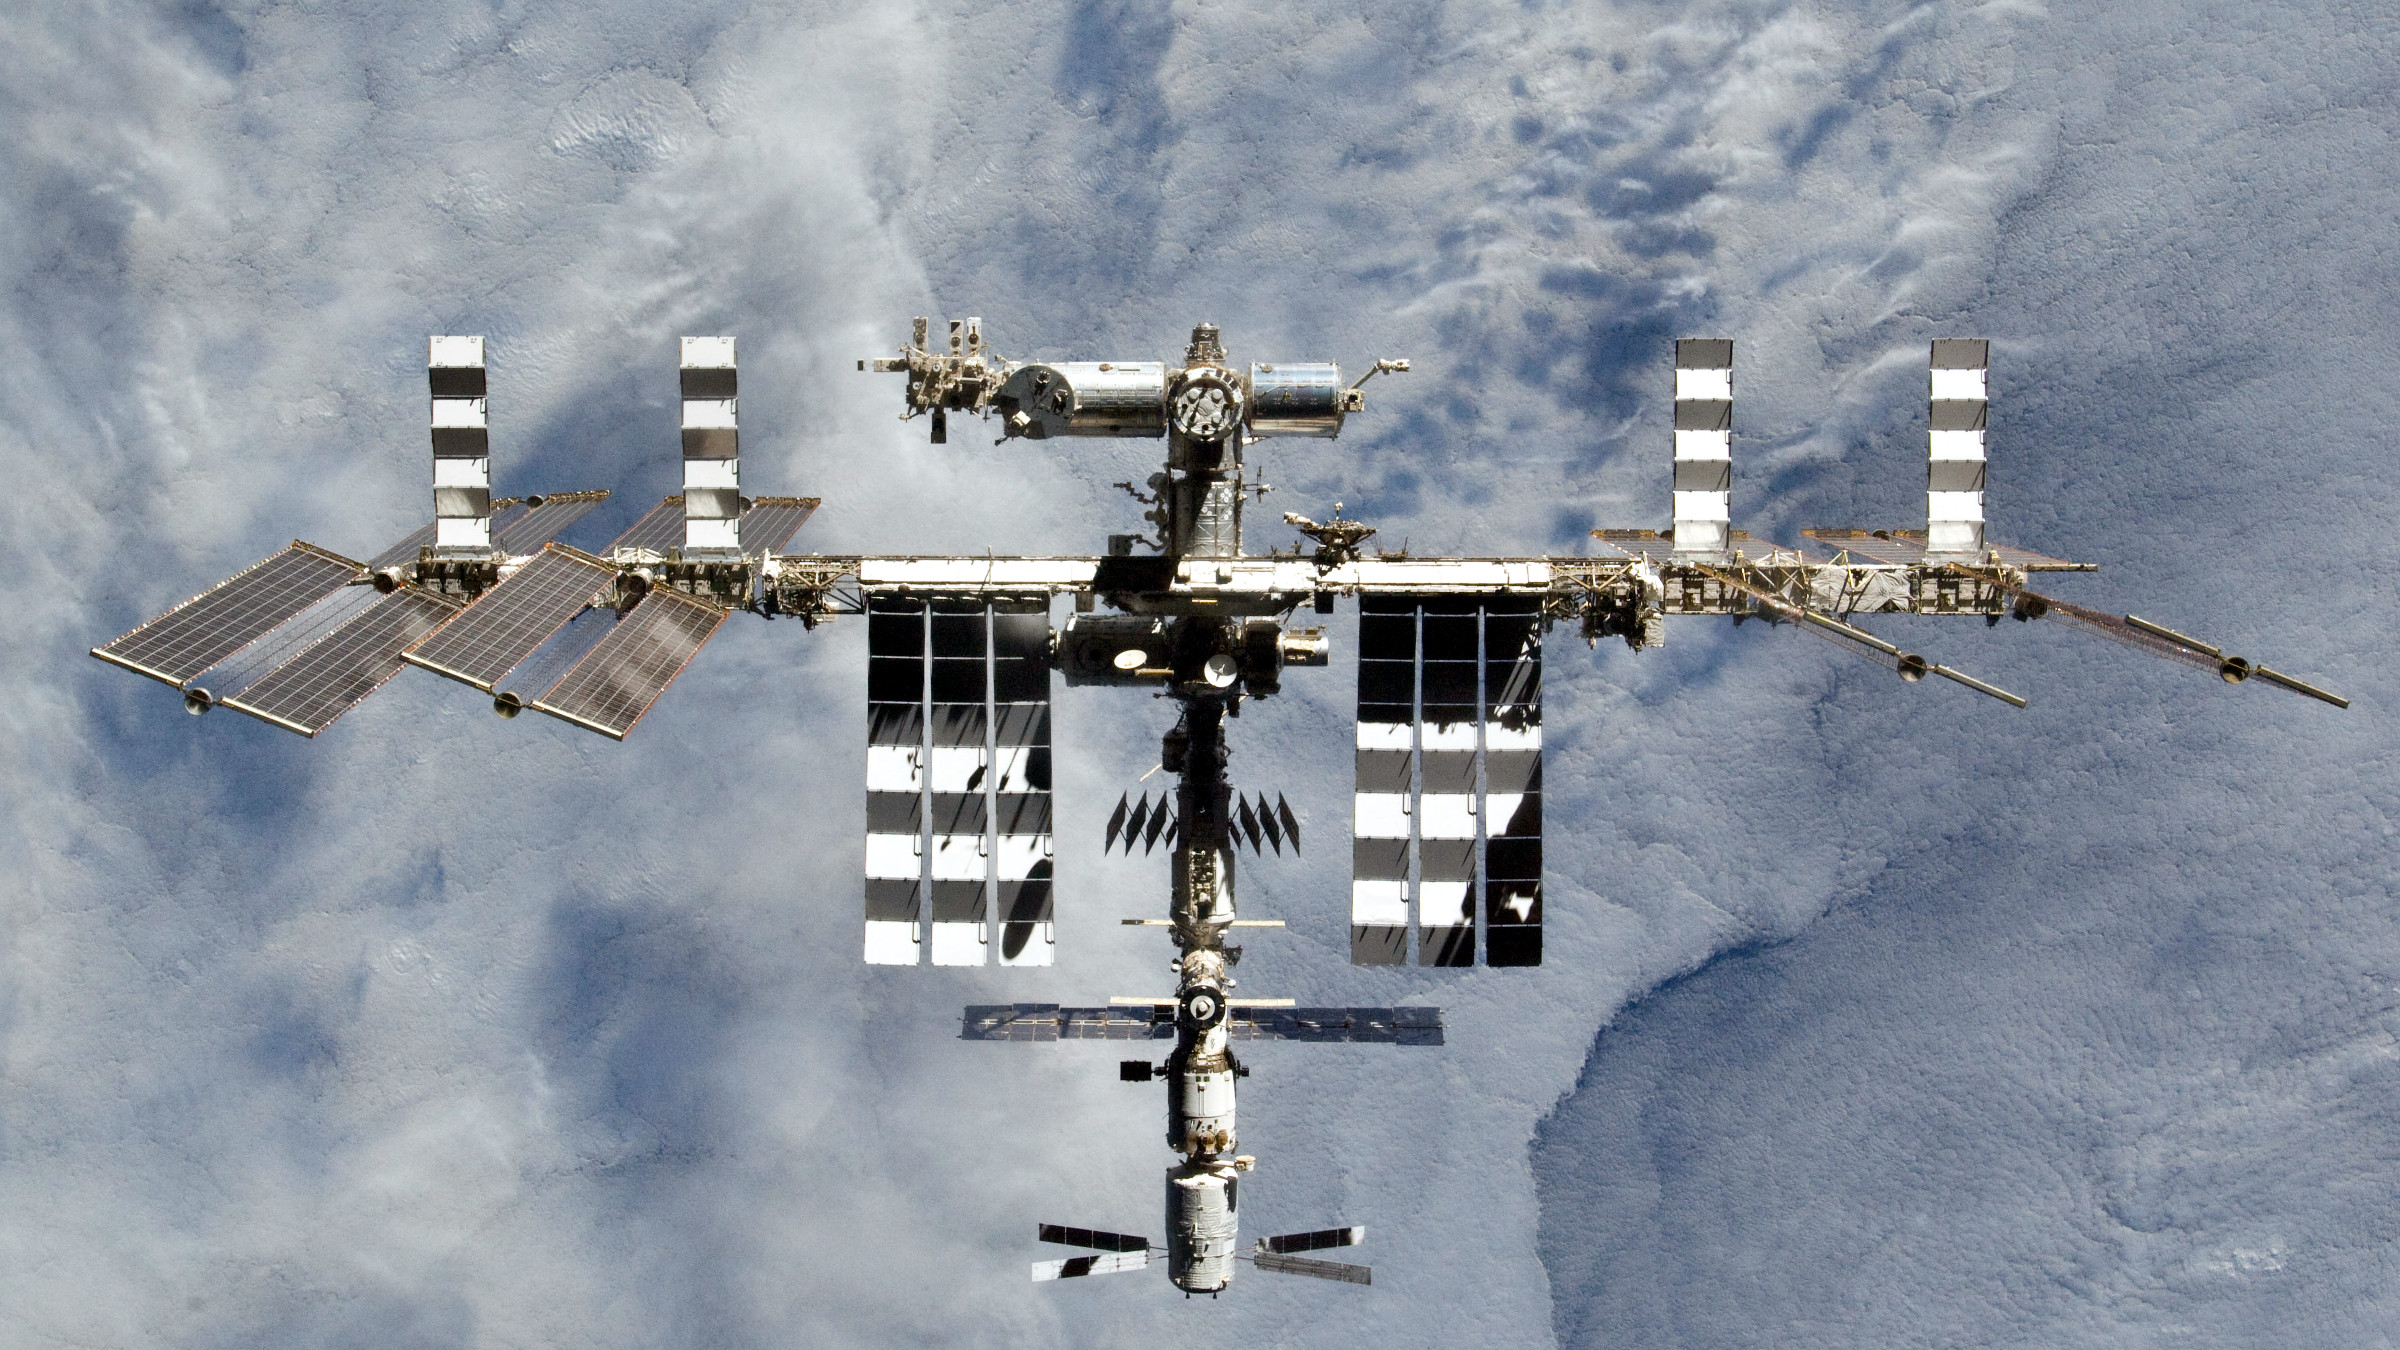 qz.com - Tim Fernholz - SpaceX and Boeing are running out of time to fly astronauts into space